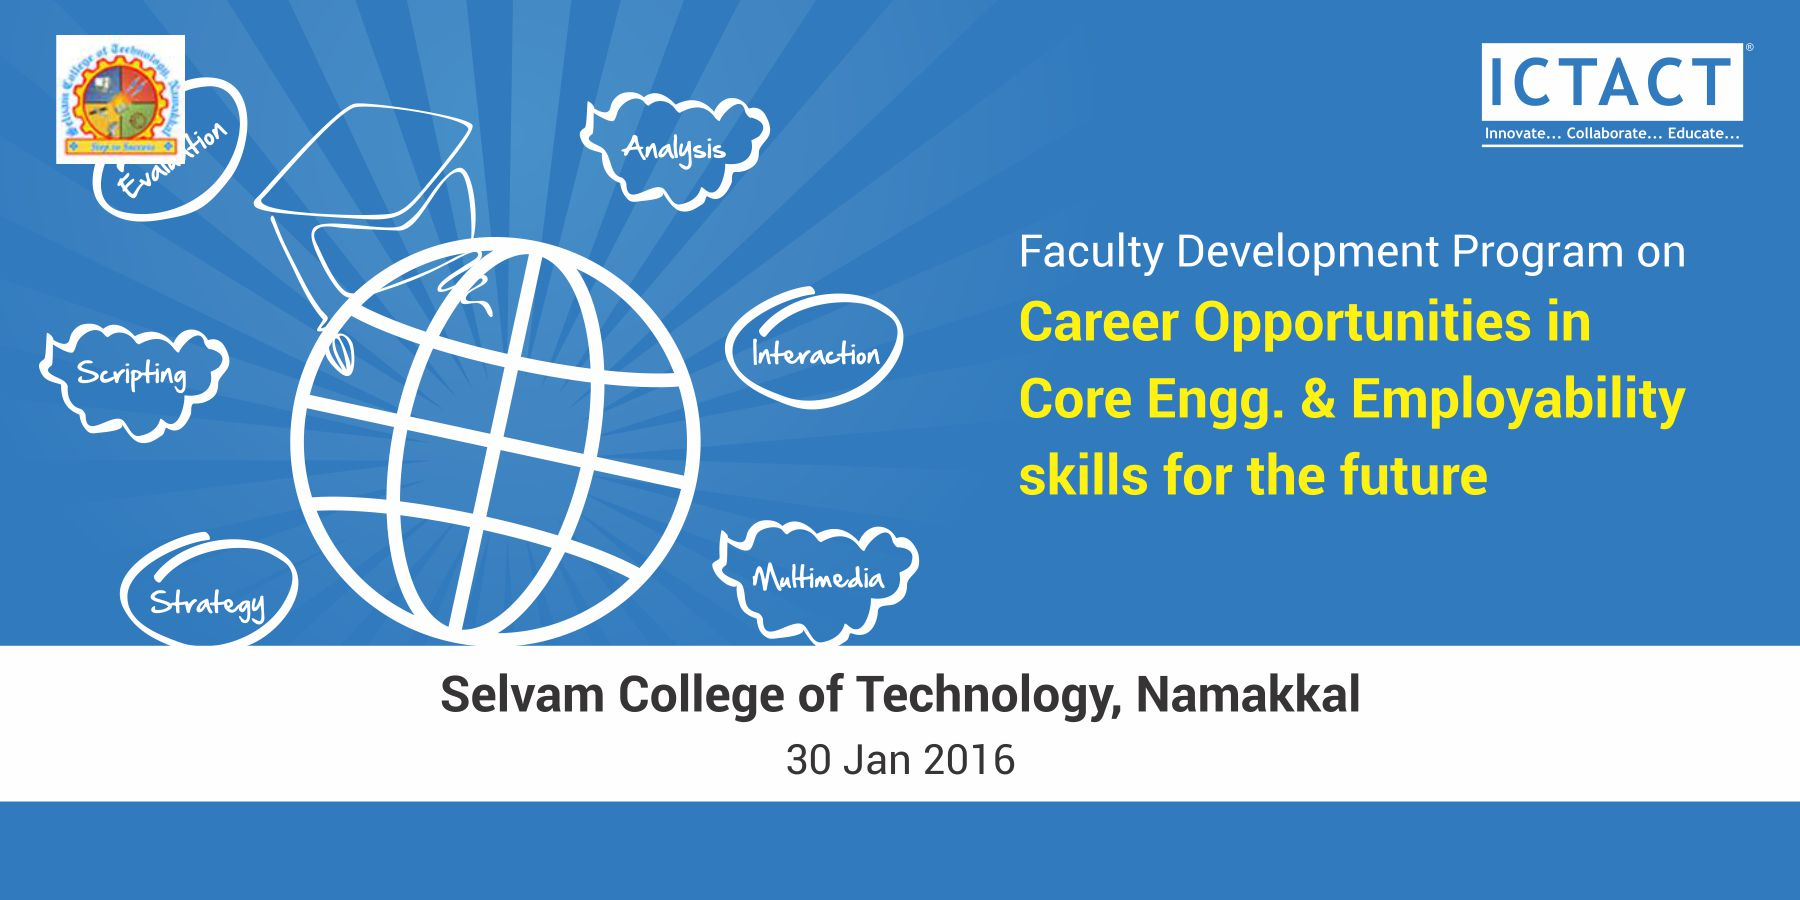 power seminar on career opportunities in core engineering in core engineering employability skills for the future on 30 01 2016 in the mechanical seminar hall at 09 30 am for ii iii year students